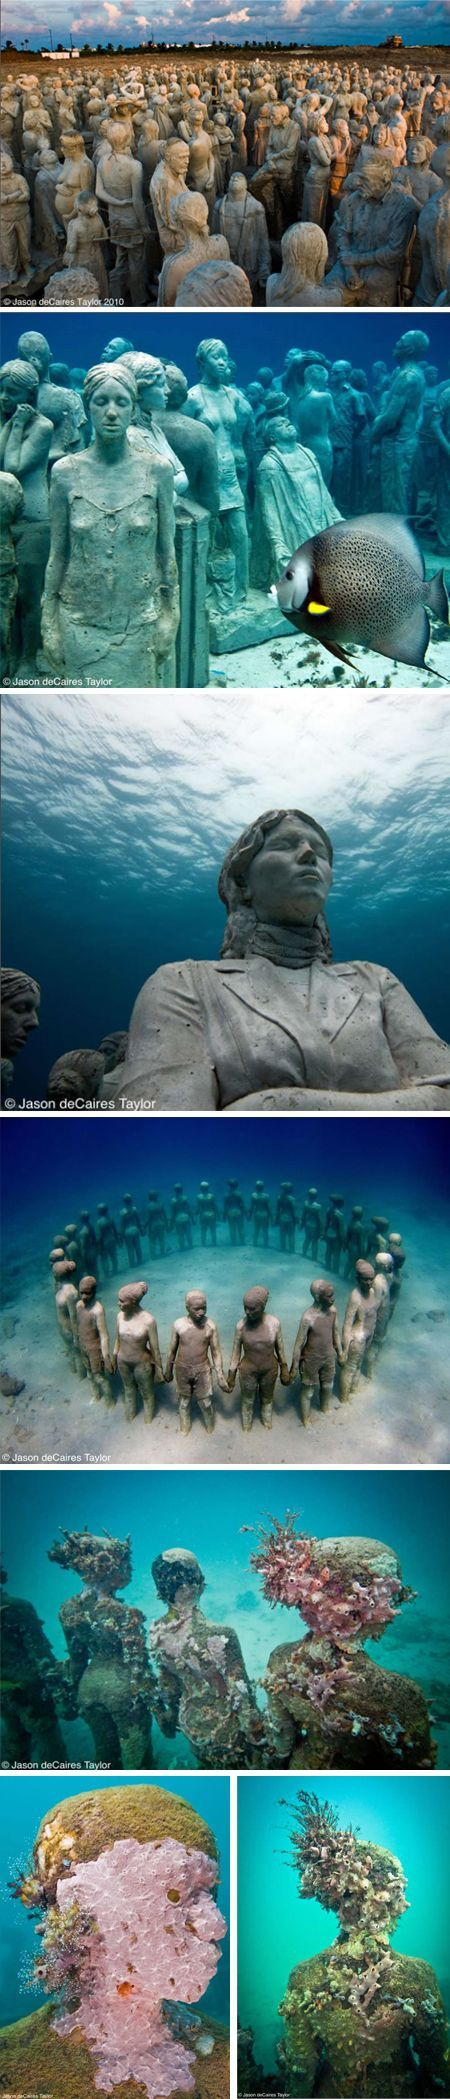 Underwater museum, Cancun. Mexico.---I can never decide if this is cool or creepy. I kind of reminds me of 'cabin by the lake' & the ghosts from PotC